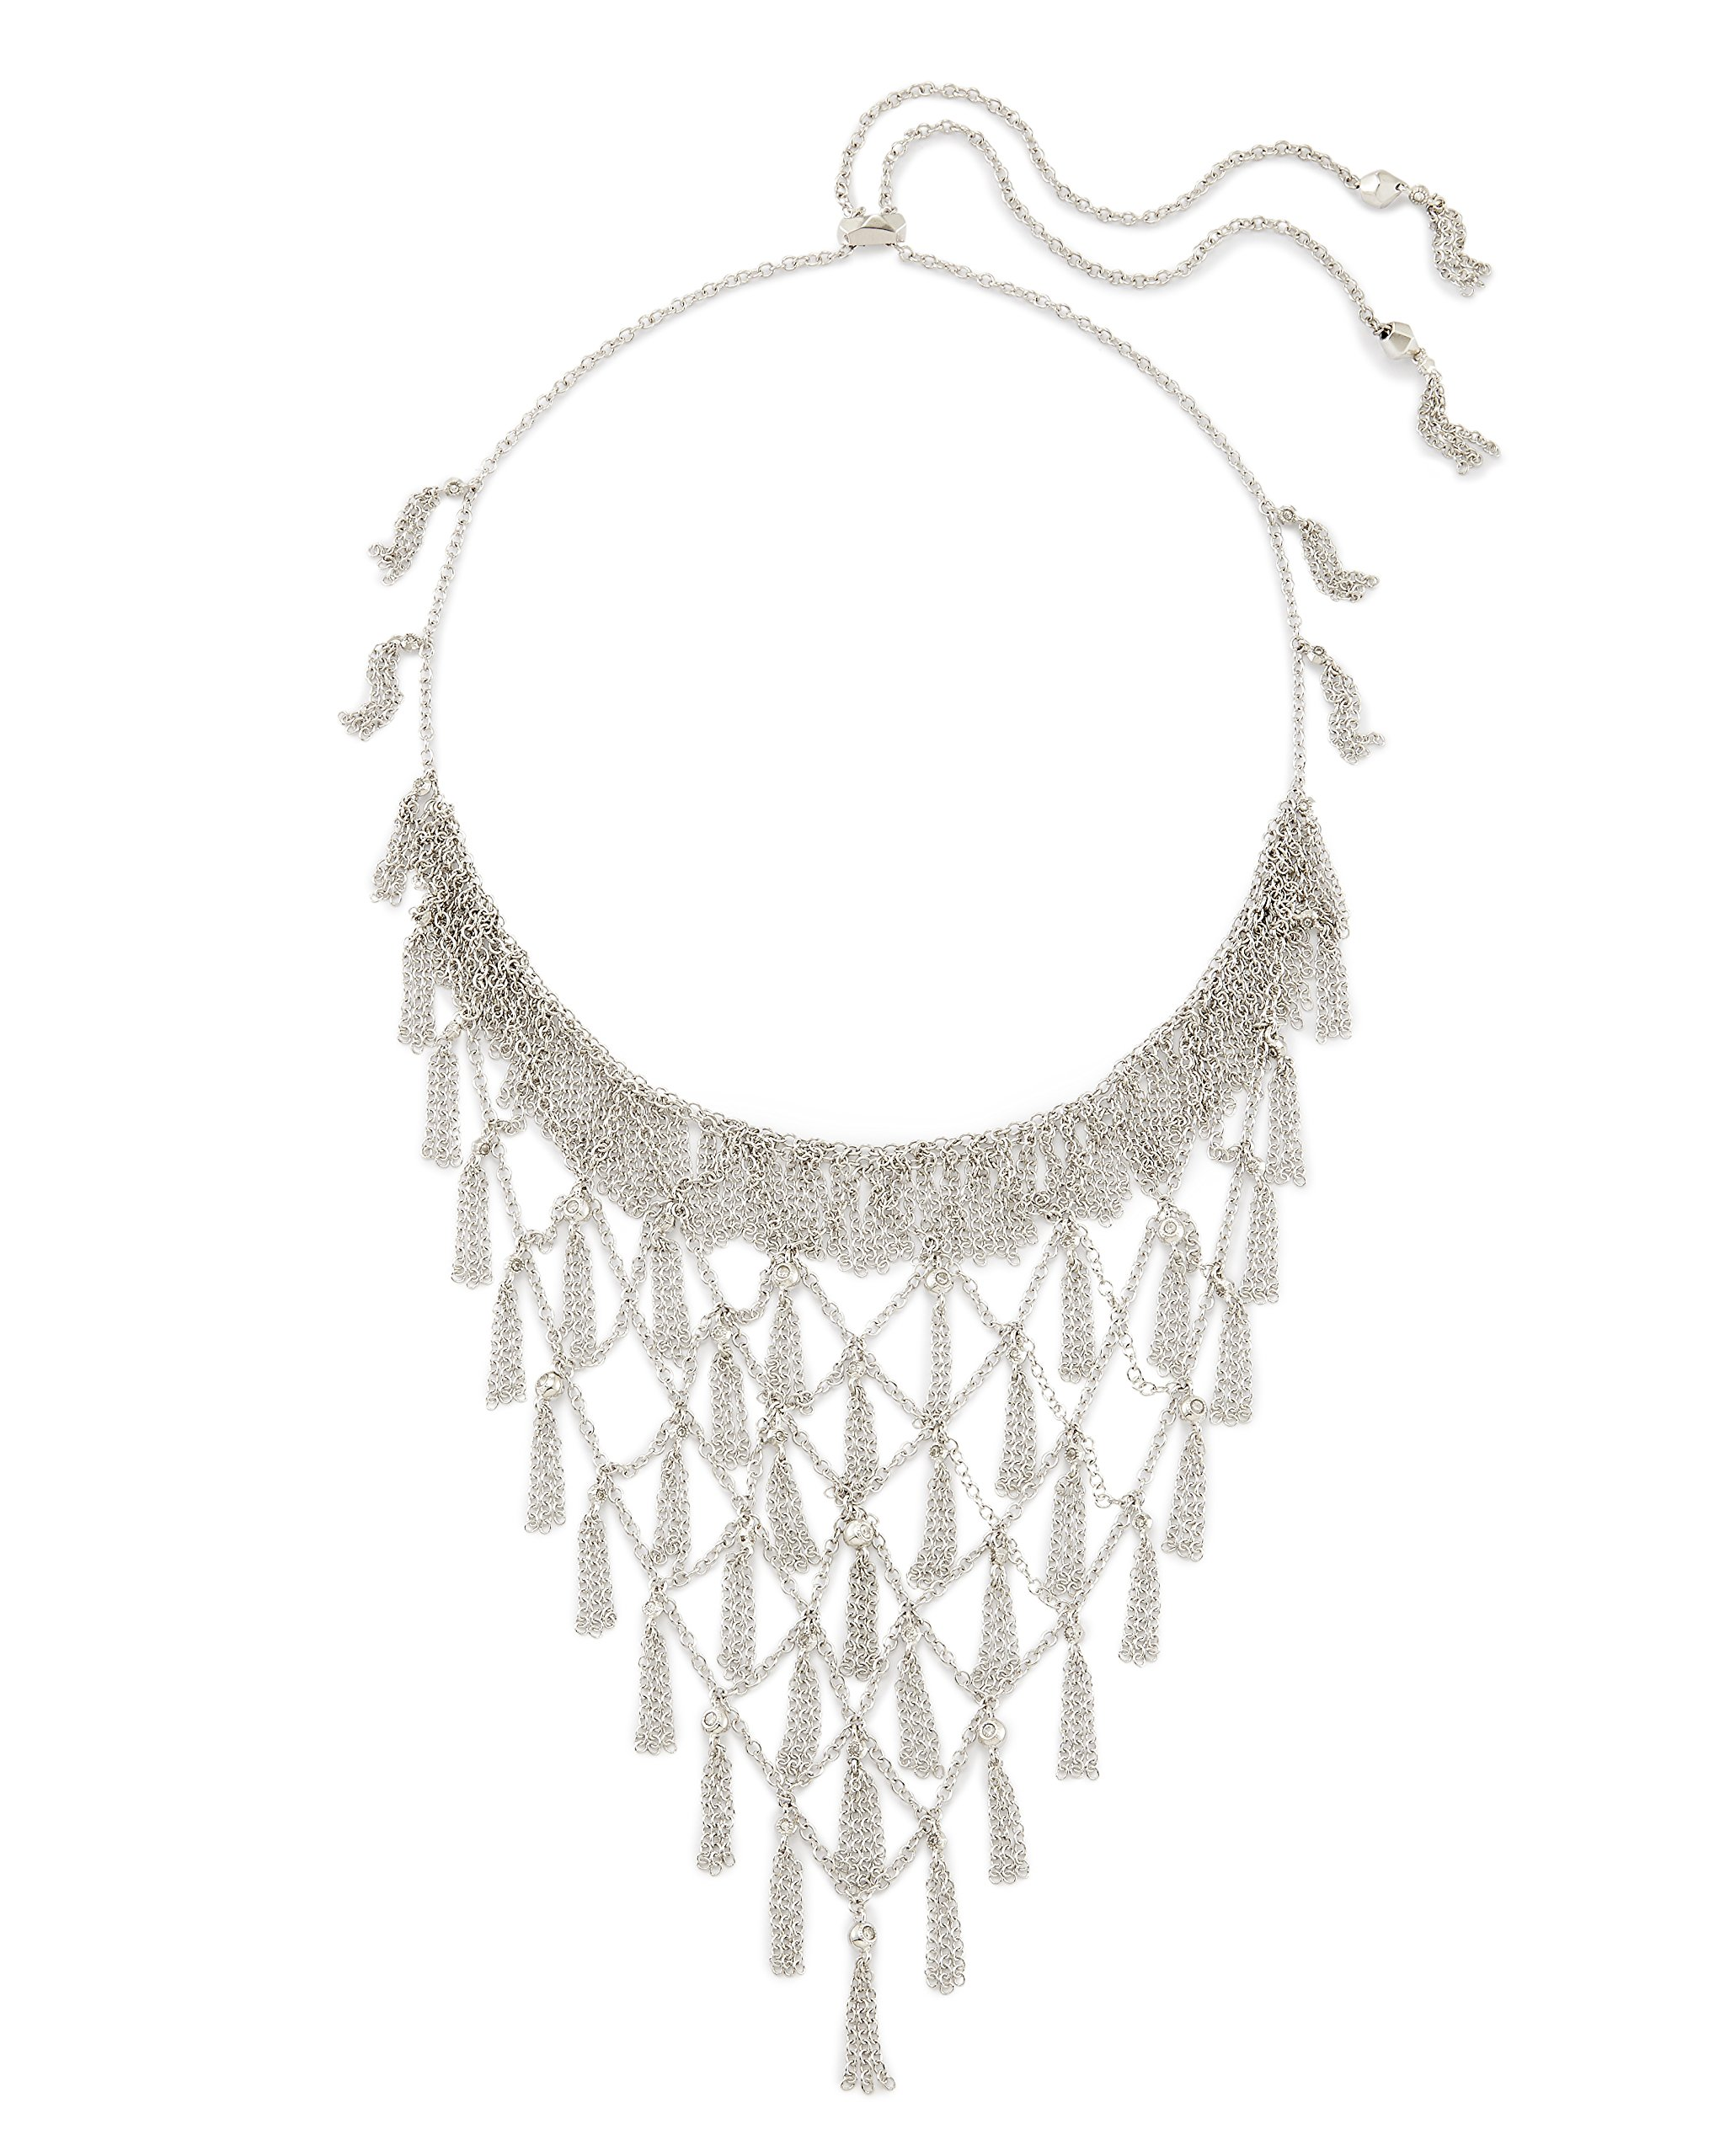 Kendra Scott Georgina Necklace in Rhodium Plated and Cubic Zirconia by Kendra Scott